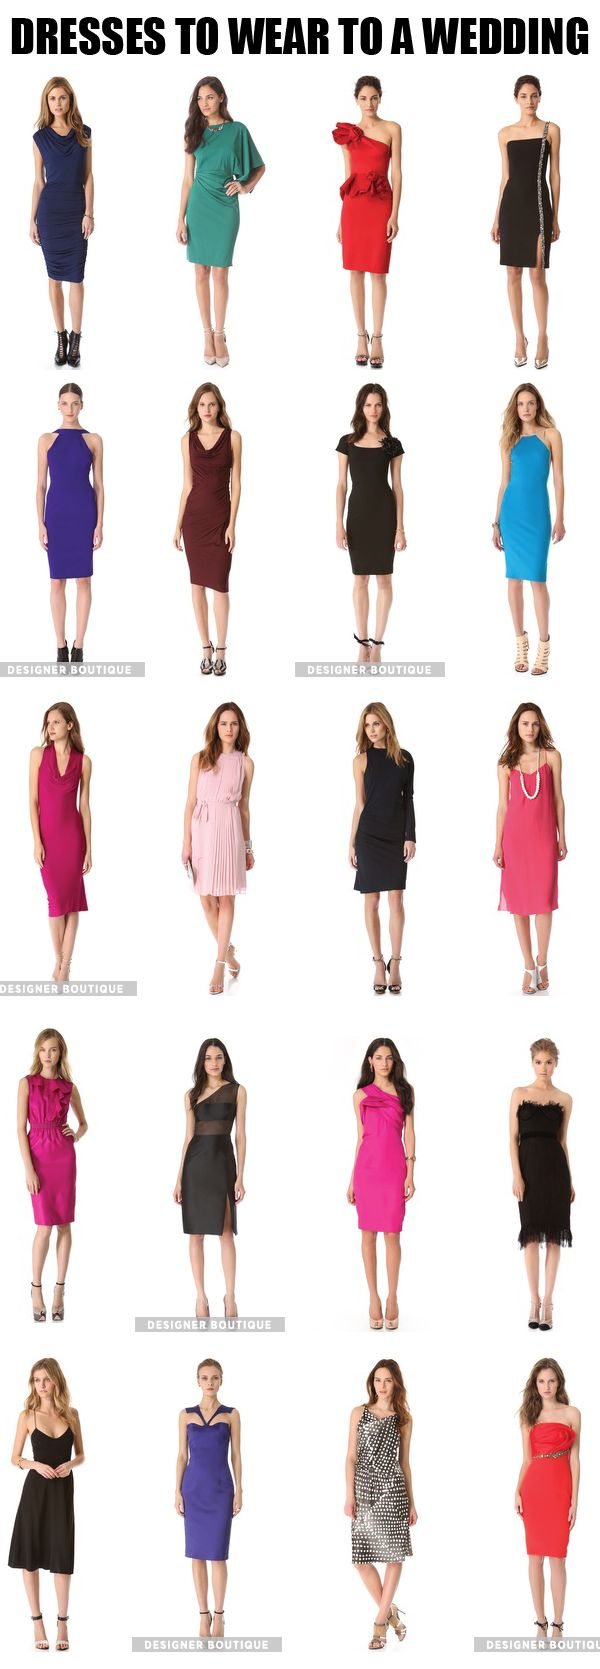 Dresses To Wear To A Wedding. I have been wondering about this.